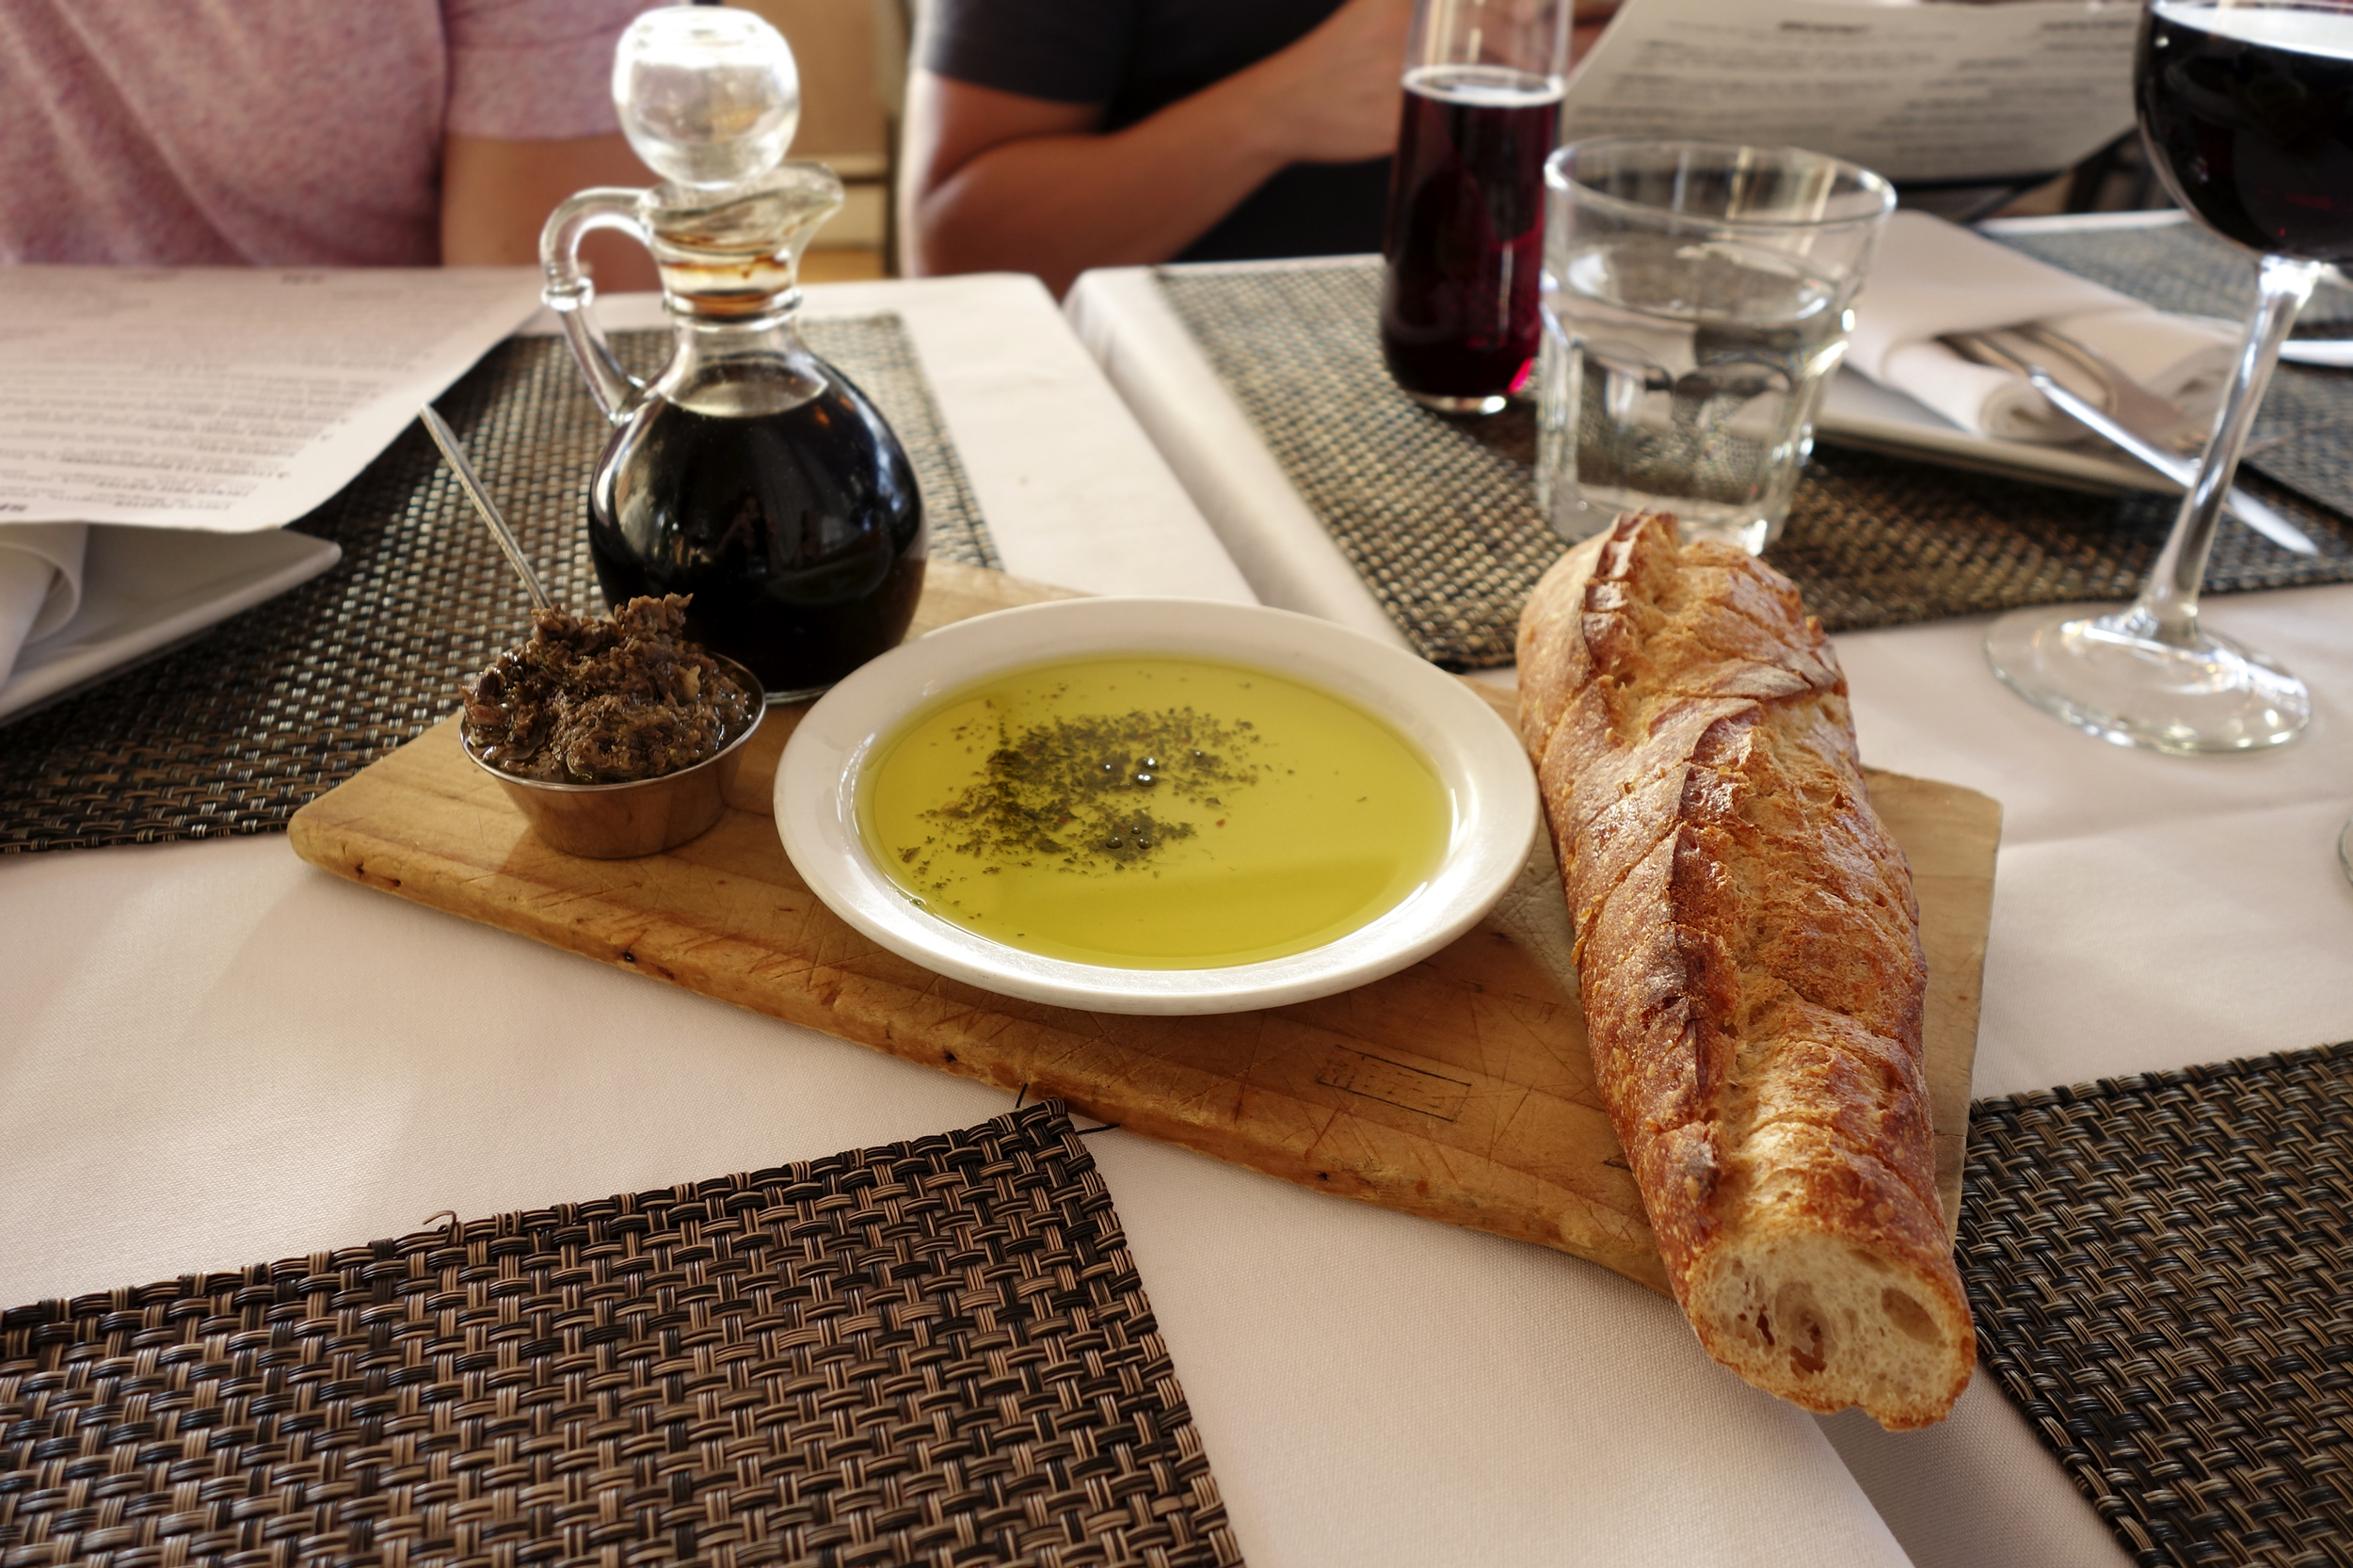 Bread, herb olive oil & balsamic, and olive tapenade.